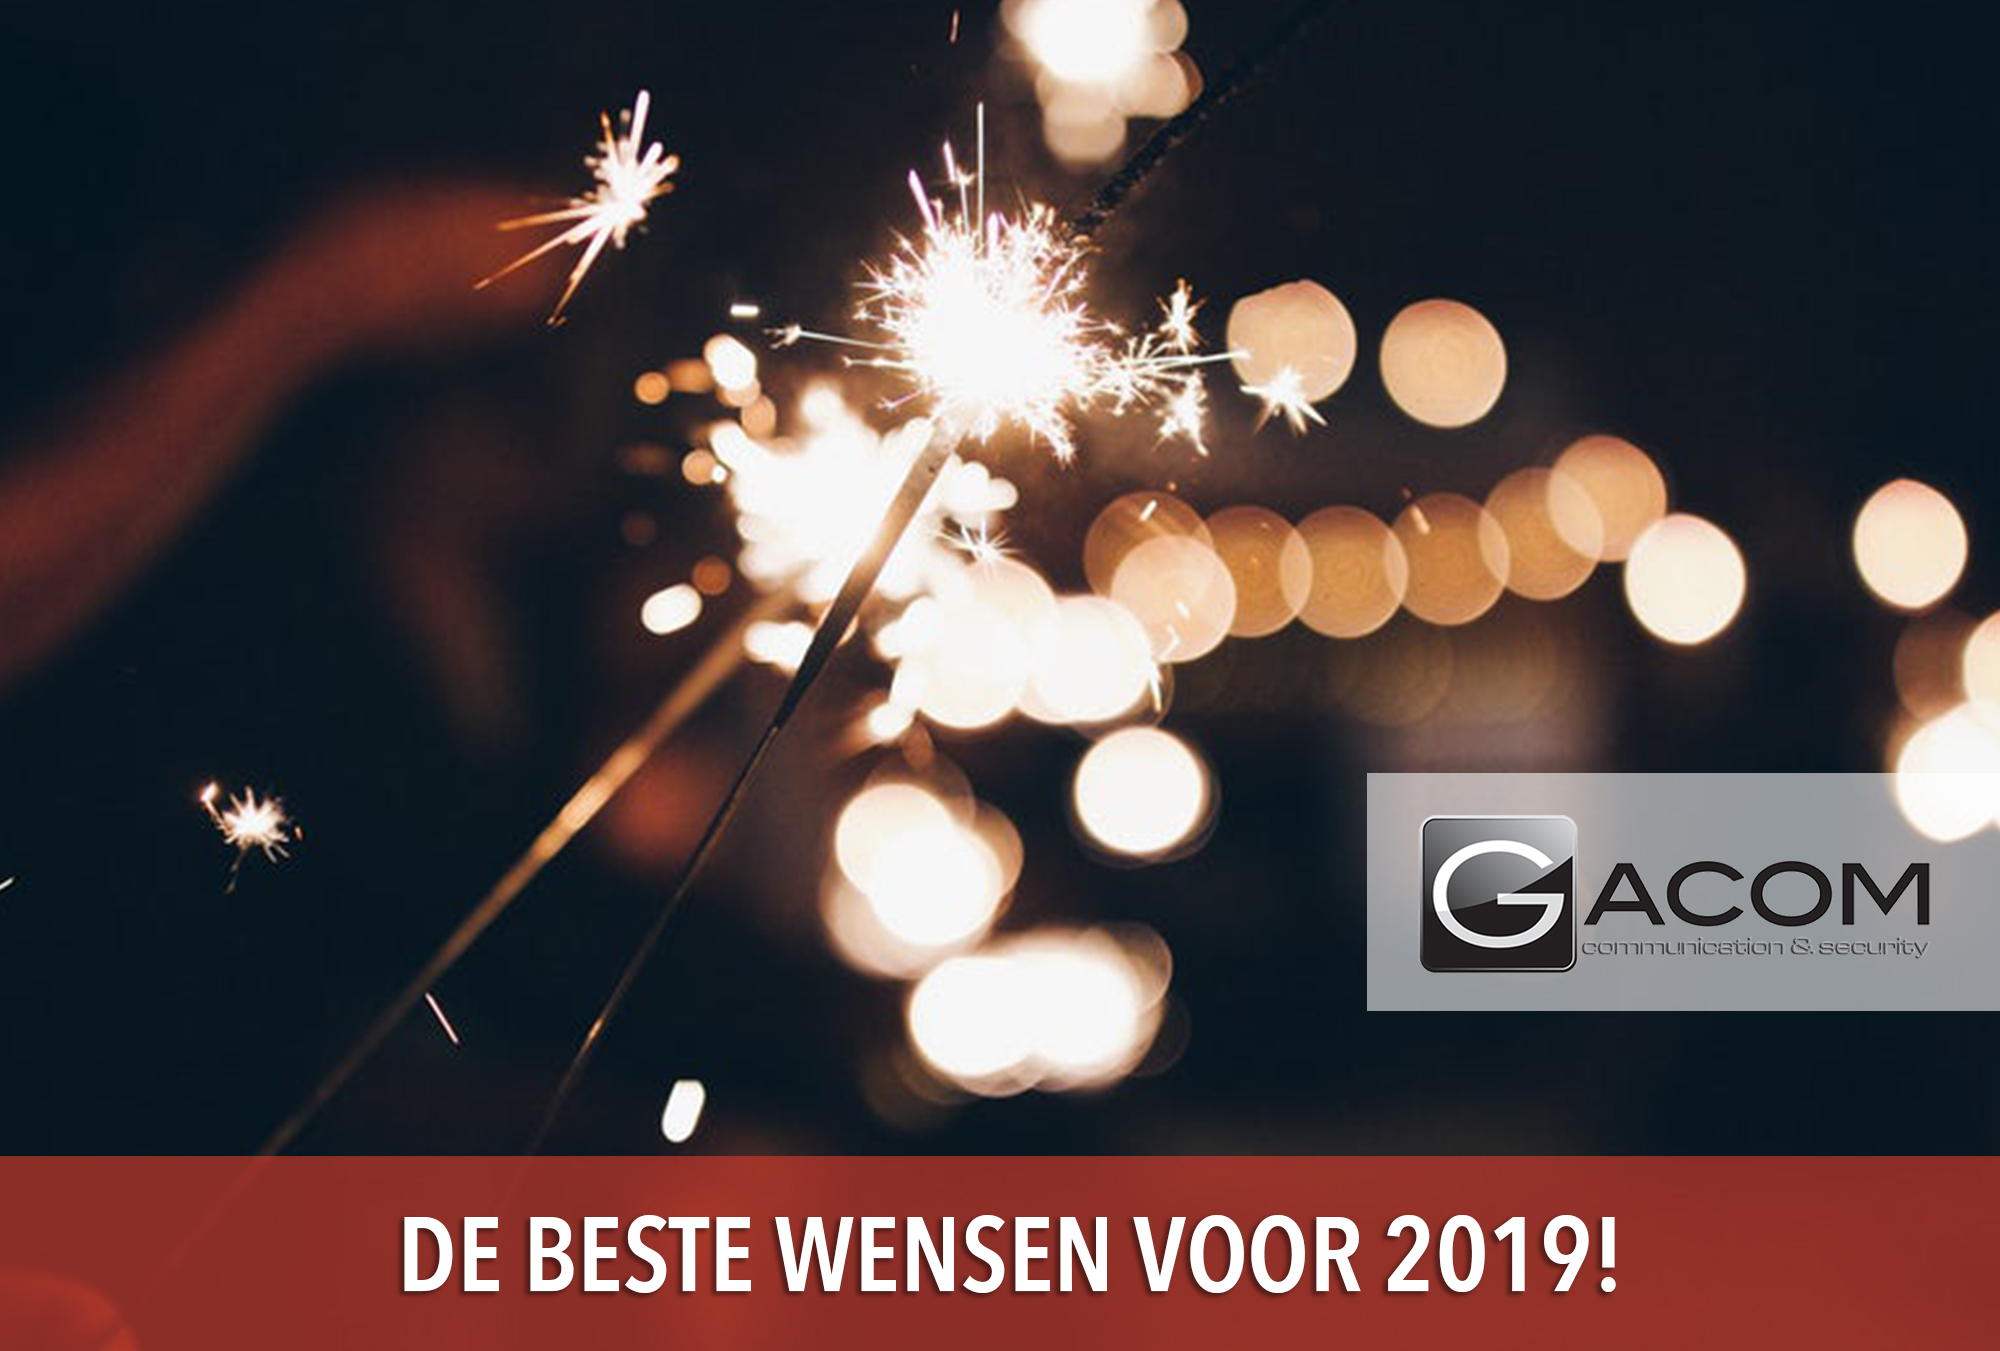 Gacom_communicatie_security_VOIPtelefonie_bestewensen_2019